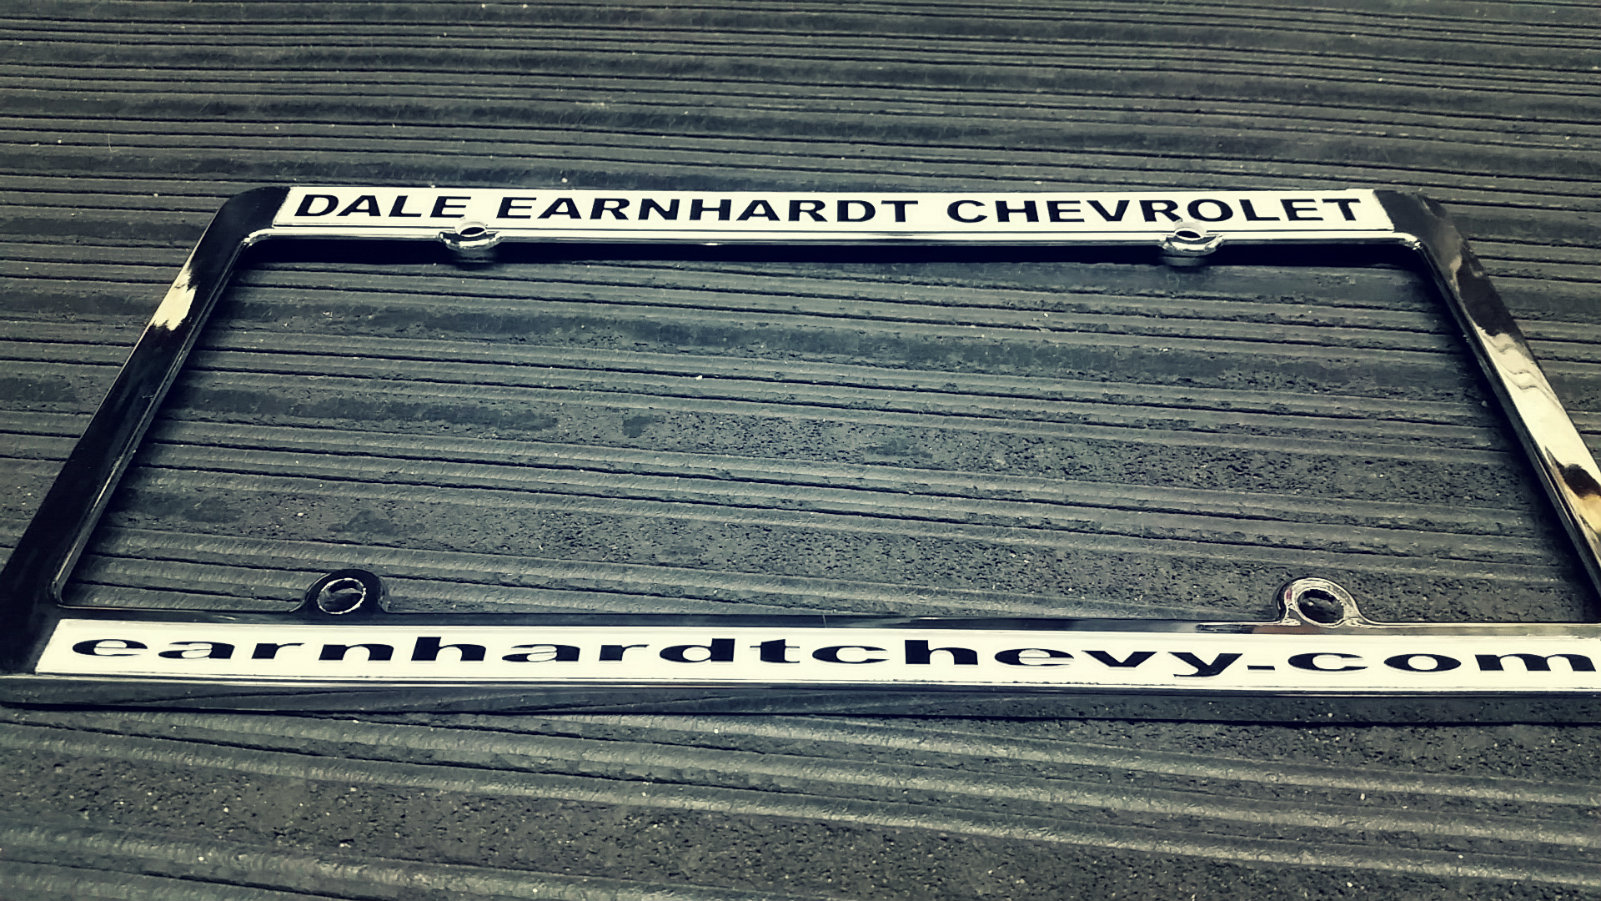 Dale Earnhardt Chevrolet License Plate Tag